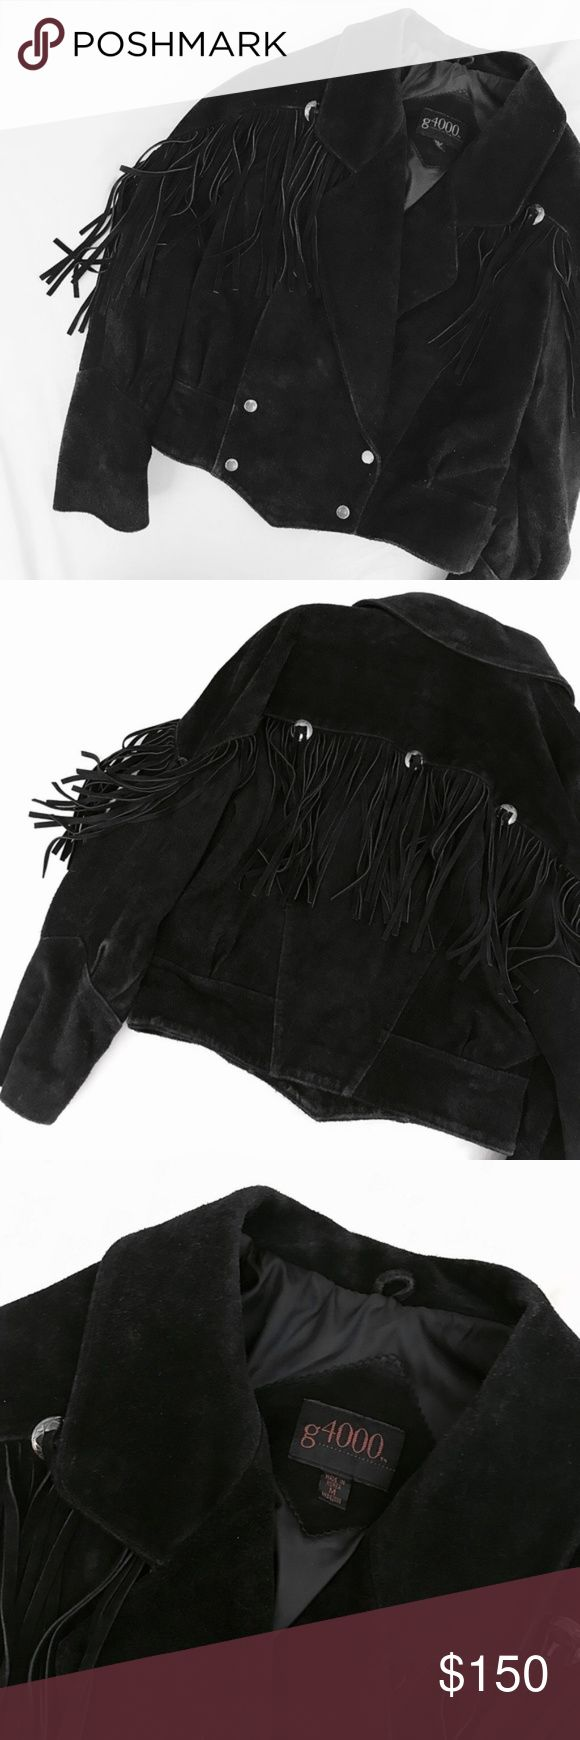 Fringed Sueded Leather Jacket You'll want to keep this forever--Vintage (likely from the 1970s), this incredible, full suede jacket features a full panel of voluminous fringe with concho details. Lovingly distressed, worn suede with long 1970s drop collar. Snap button closure, semi-oversize fit. Marked a size M, if you wear a size S-M this will give you a great fit (XS as well, will just be slightly more oversize). Great vintage condition with wear to suede which really improves the look…